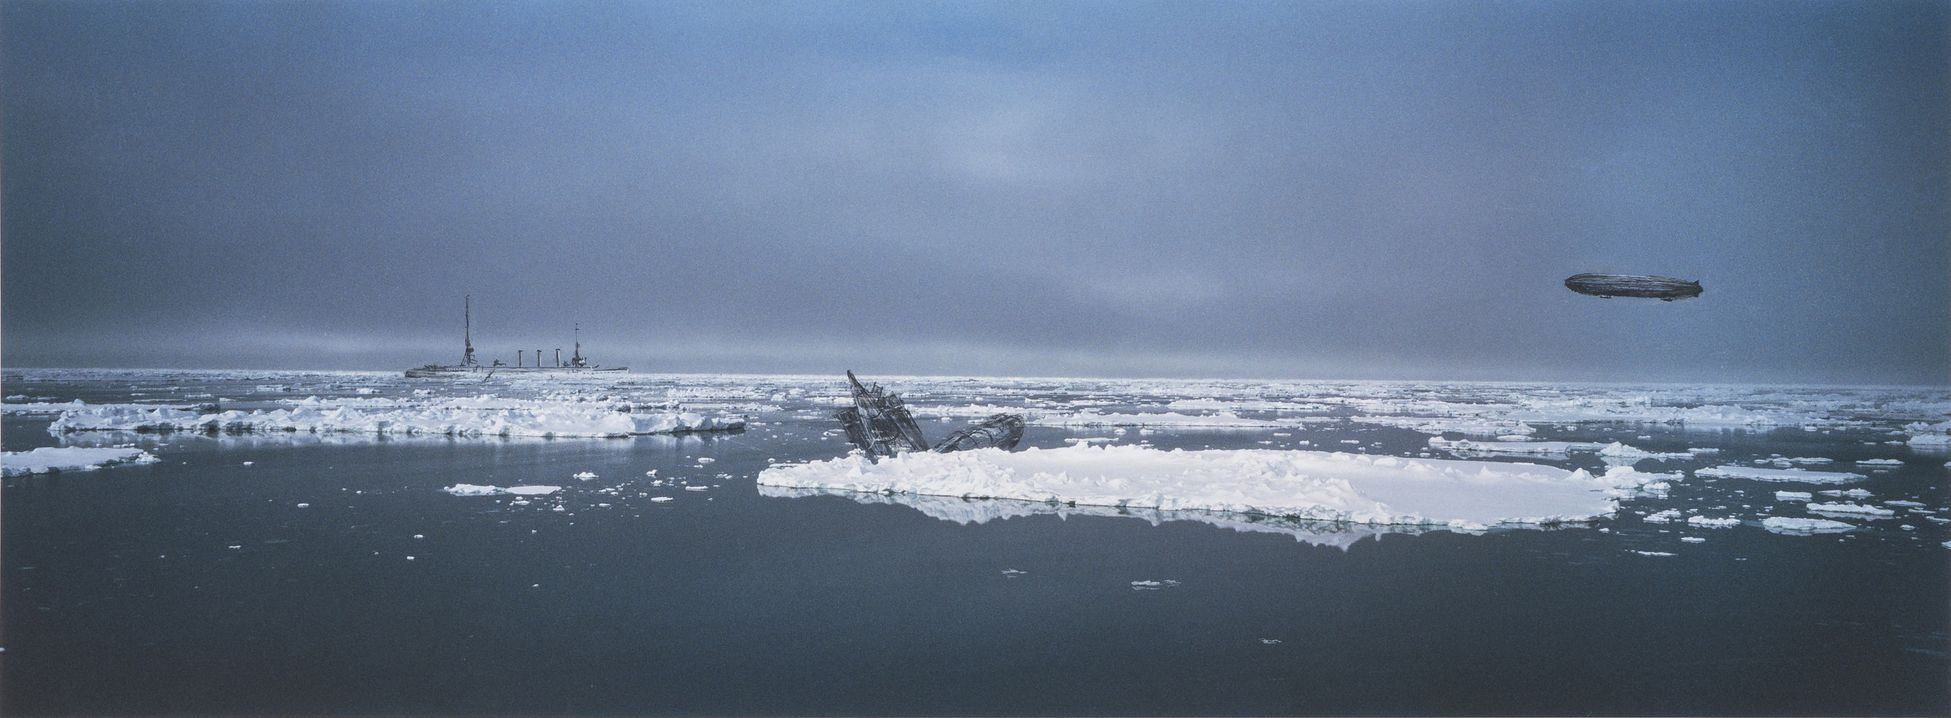 Ian North's Antarctic artworks evoke the beauty and terror of our era